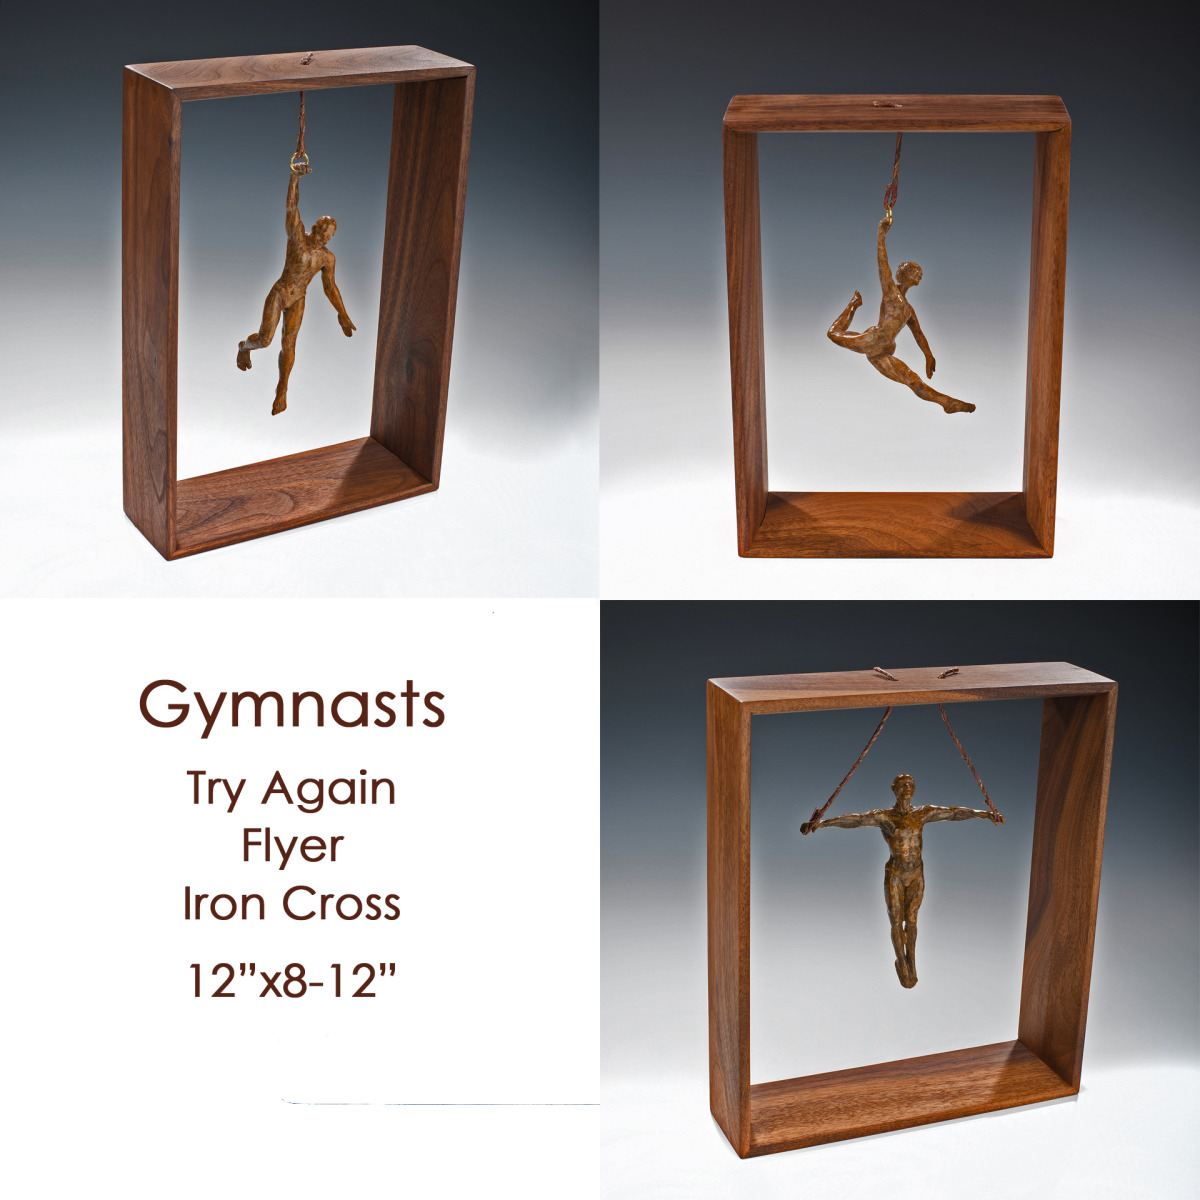 The Gymnasts (large view)